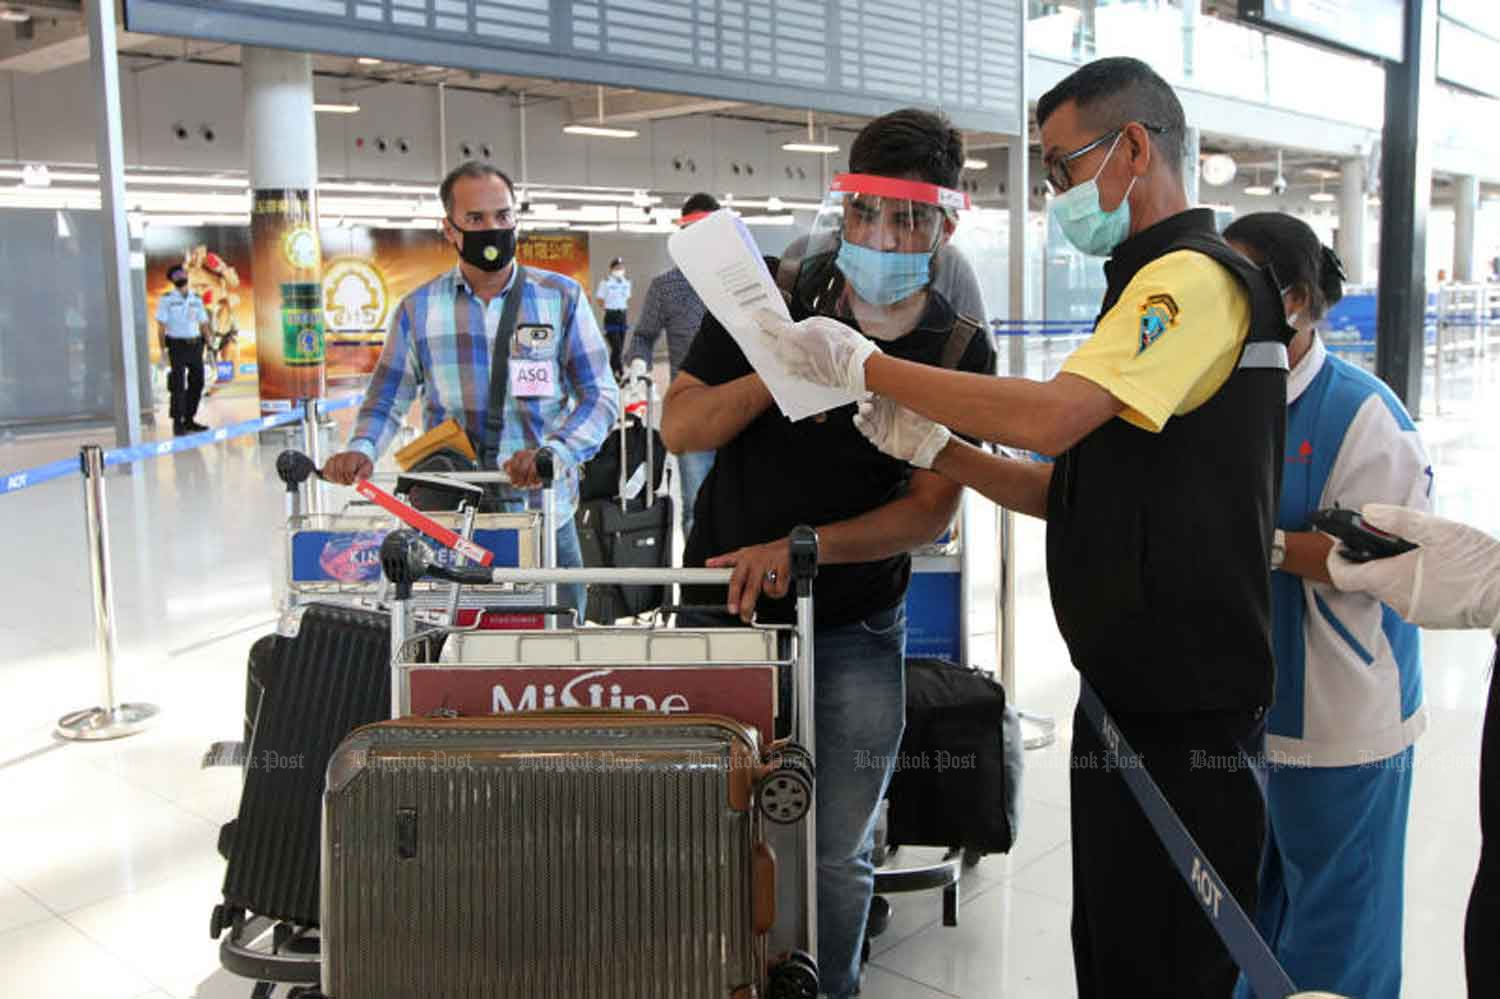 Passengers arrive at Suvarnabhumi Airport from India. The government reported on Tuesday that three Indian nationals were among 14 new imported Covid-19 cases. (Photo: Wichan Charoenkiatpakul)